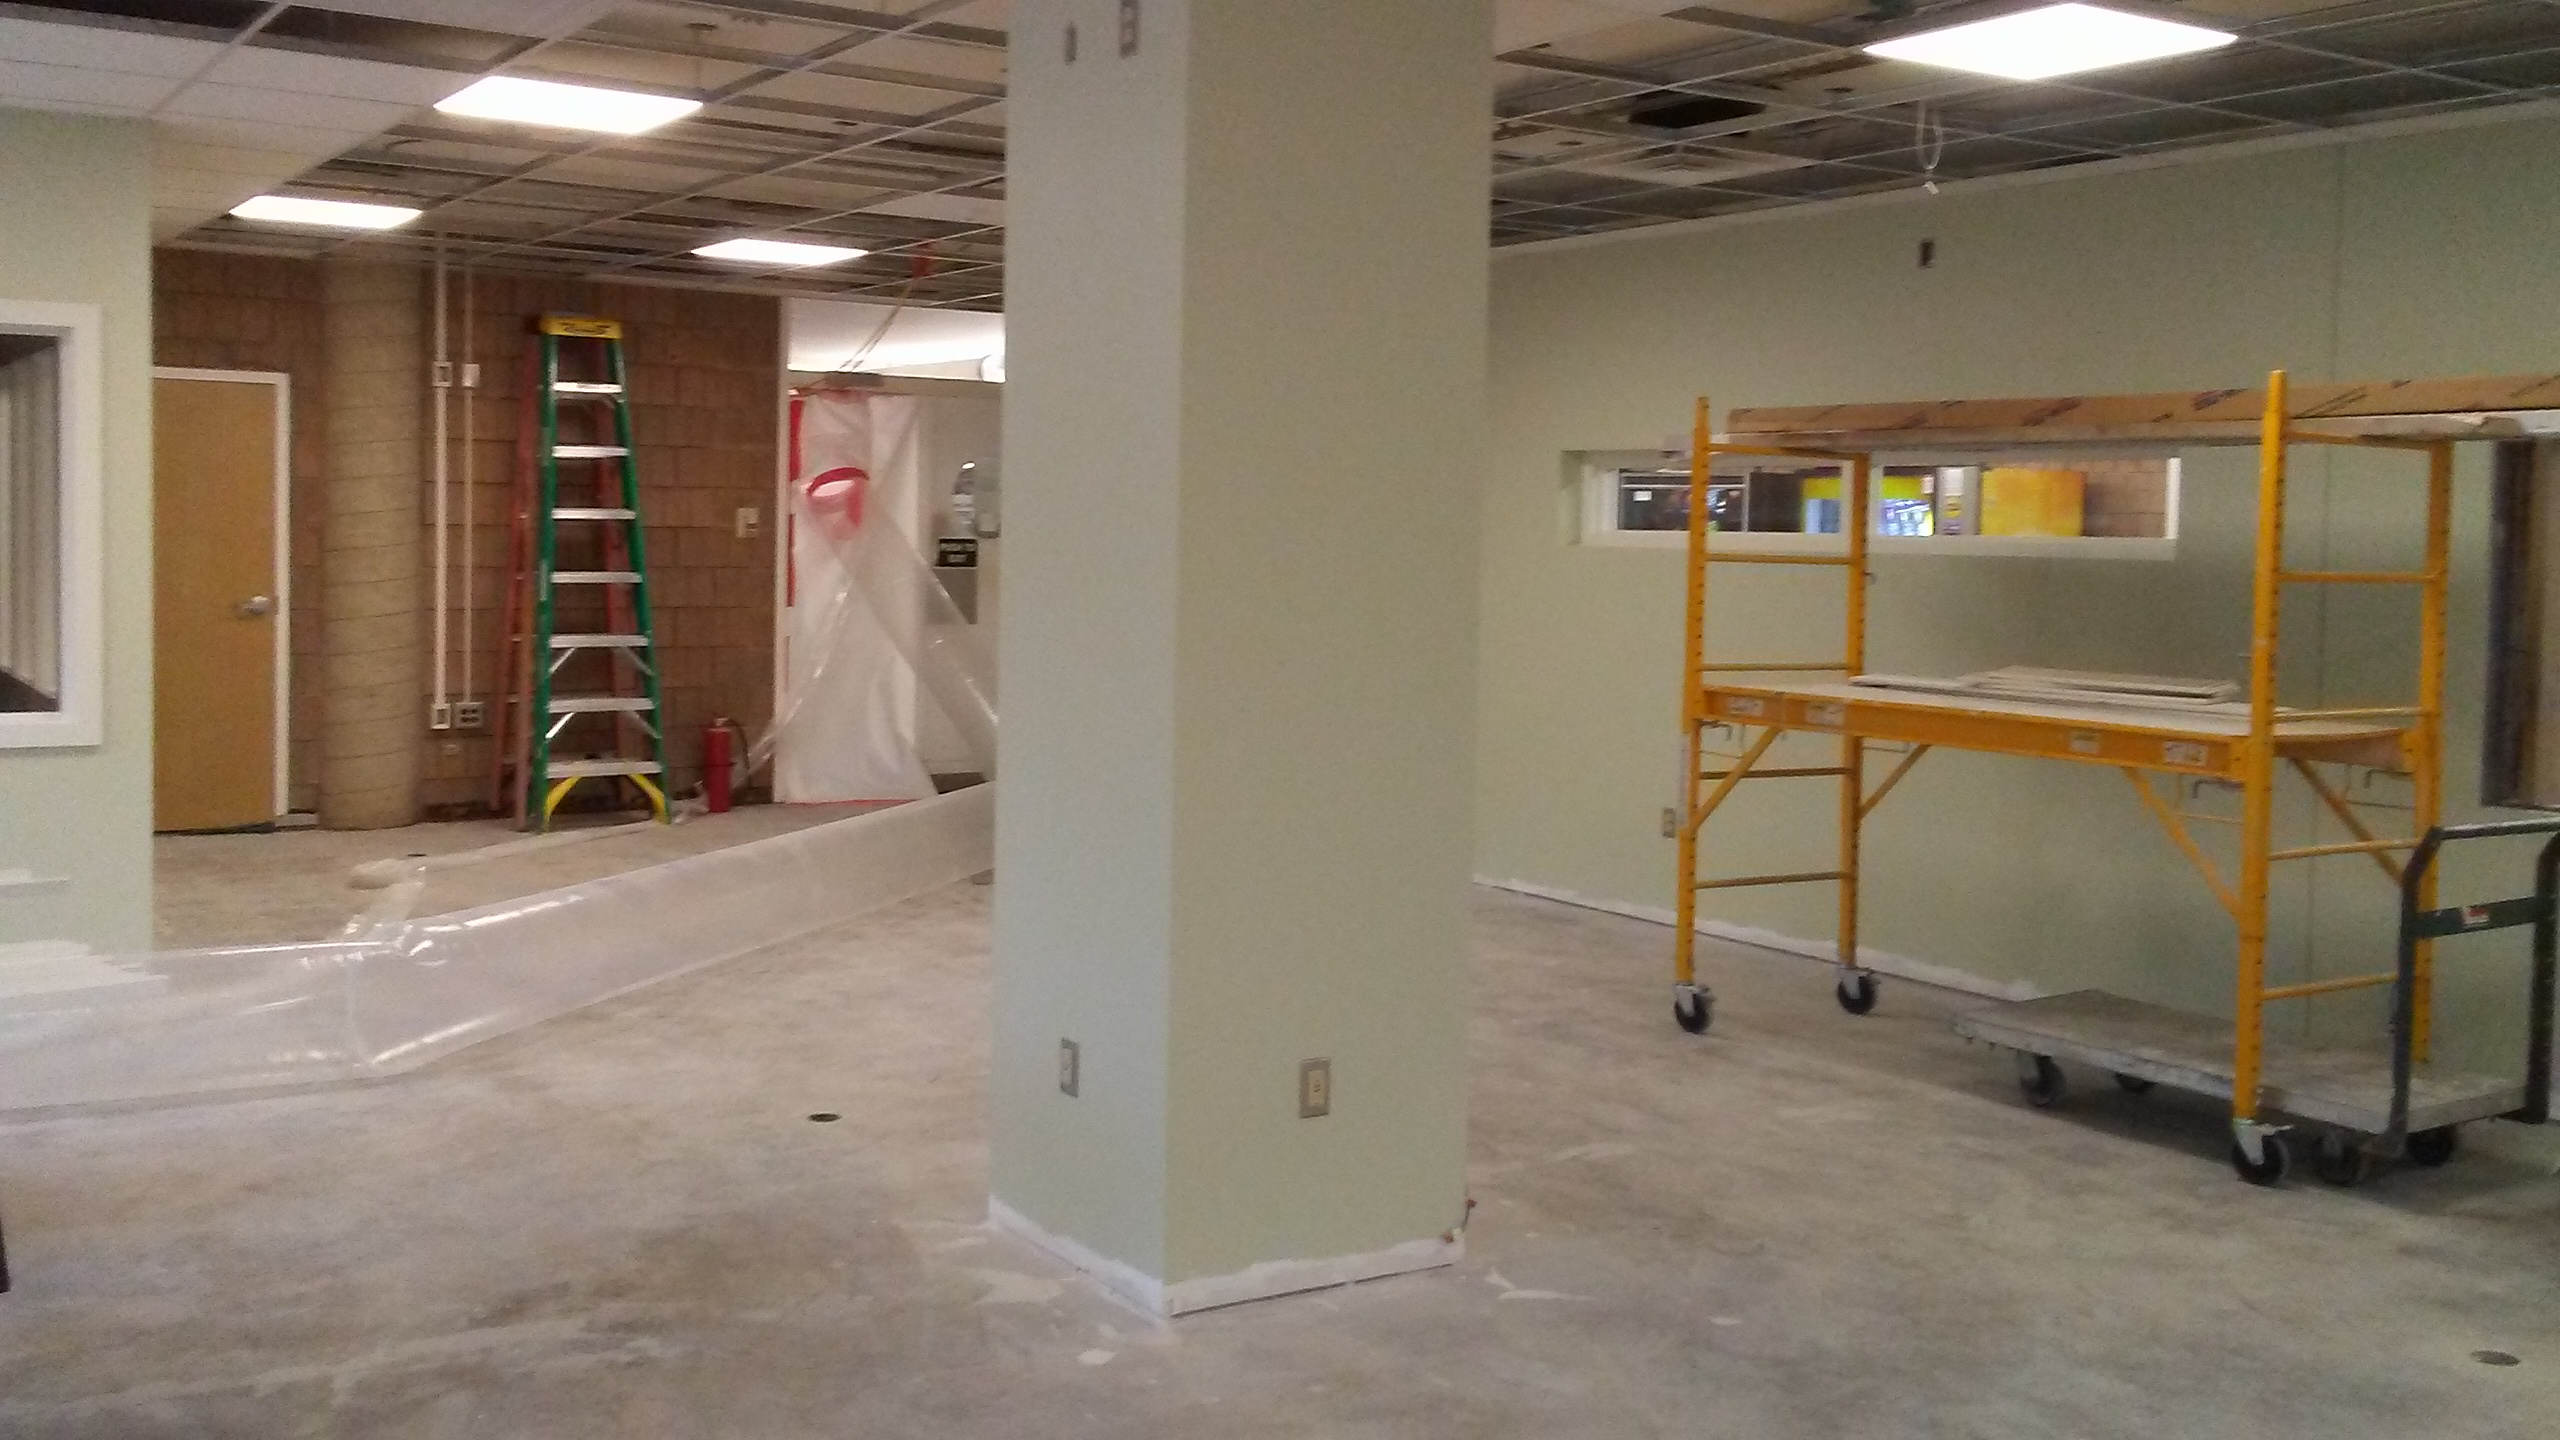 Angel College Center's Multicultural Center Renovation Shared Space